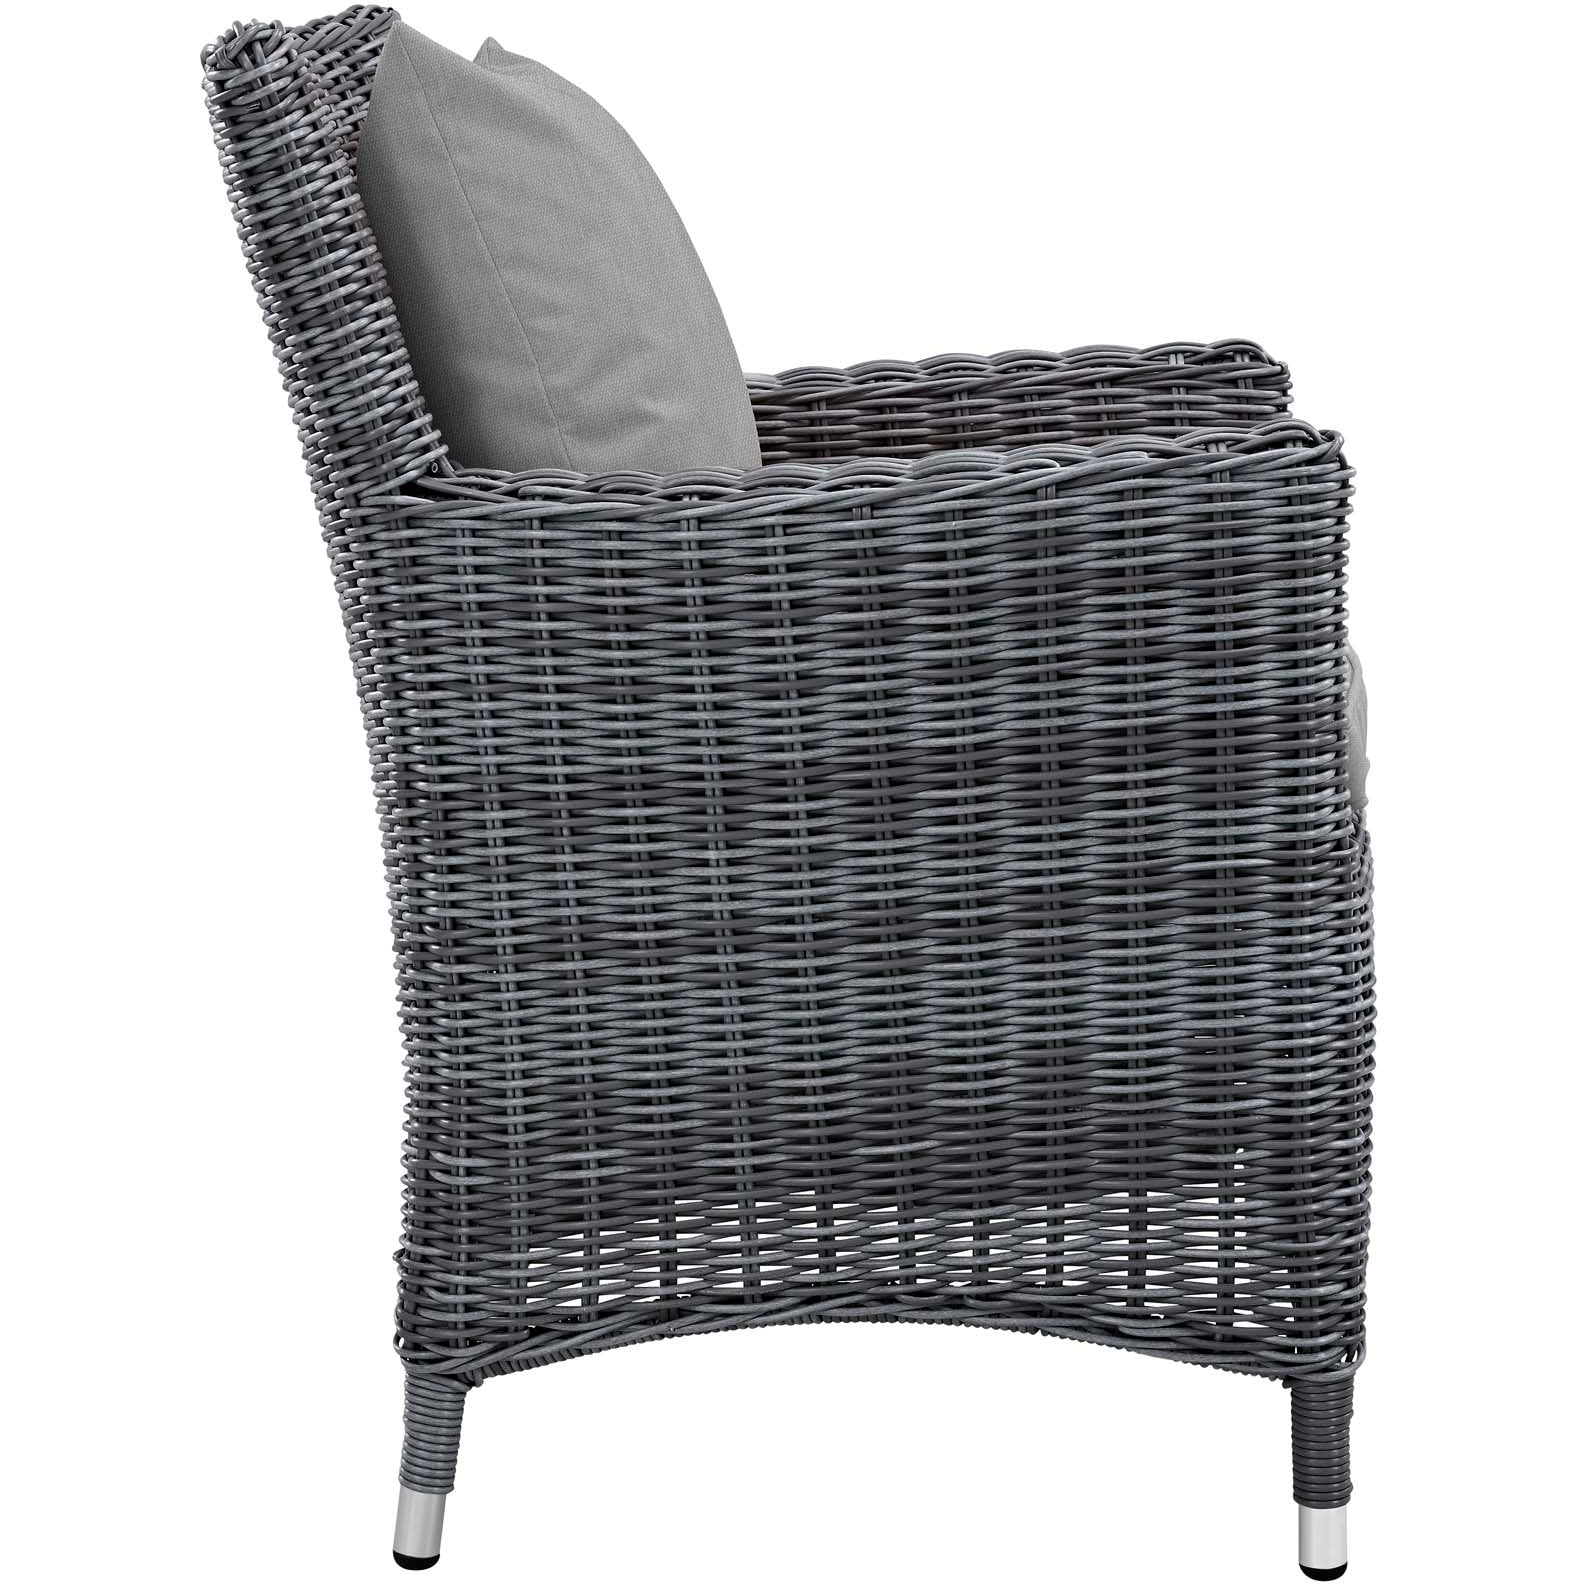 Summon Dining Outdoor Patio Sunbrella® Armchair - Canvas Gray